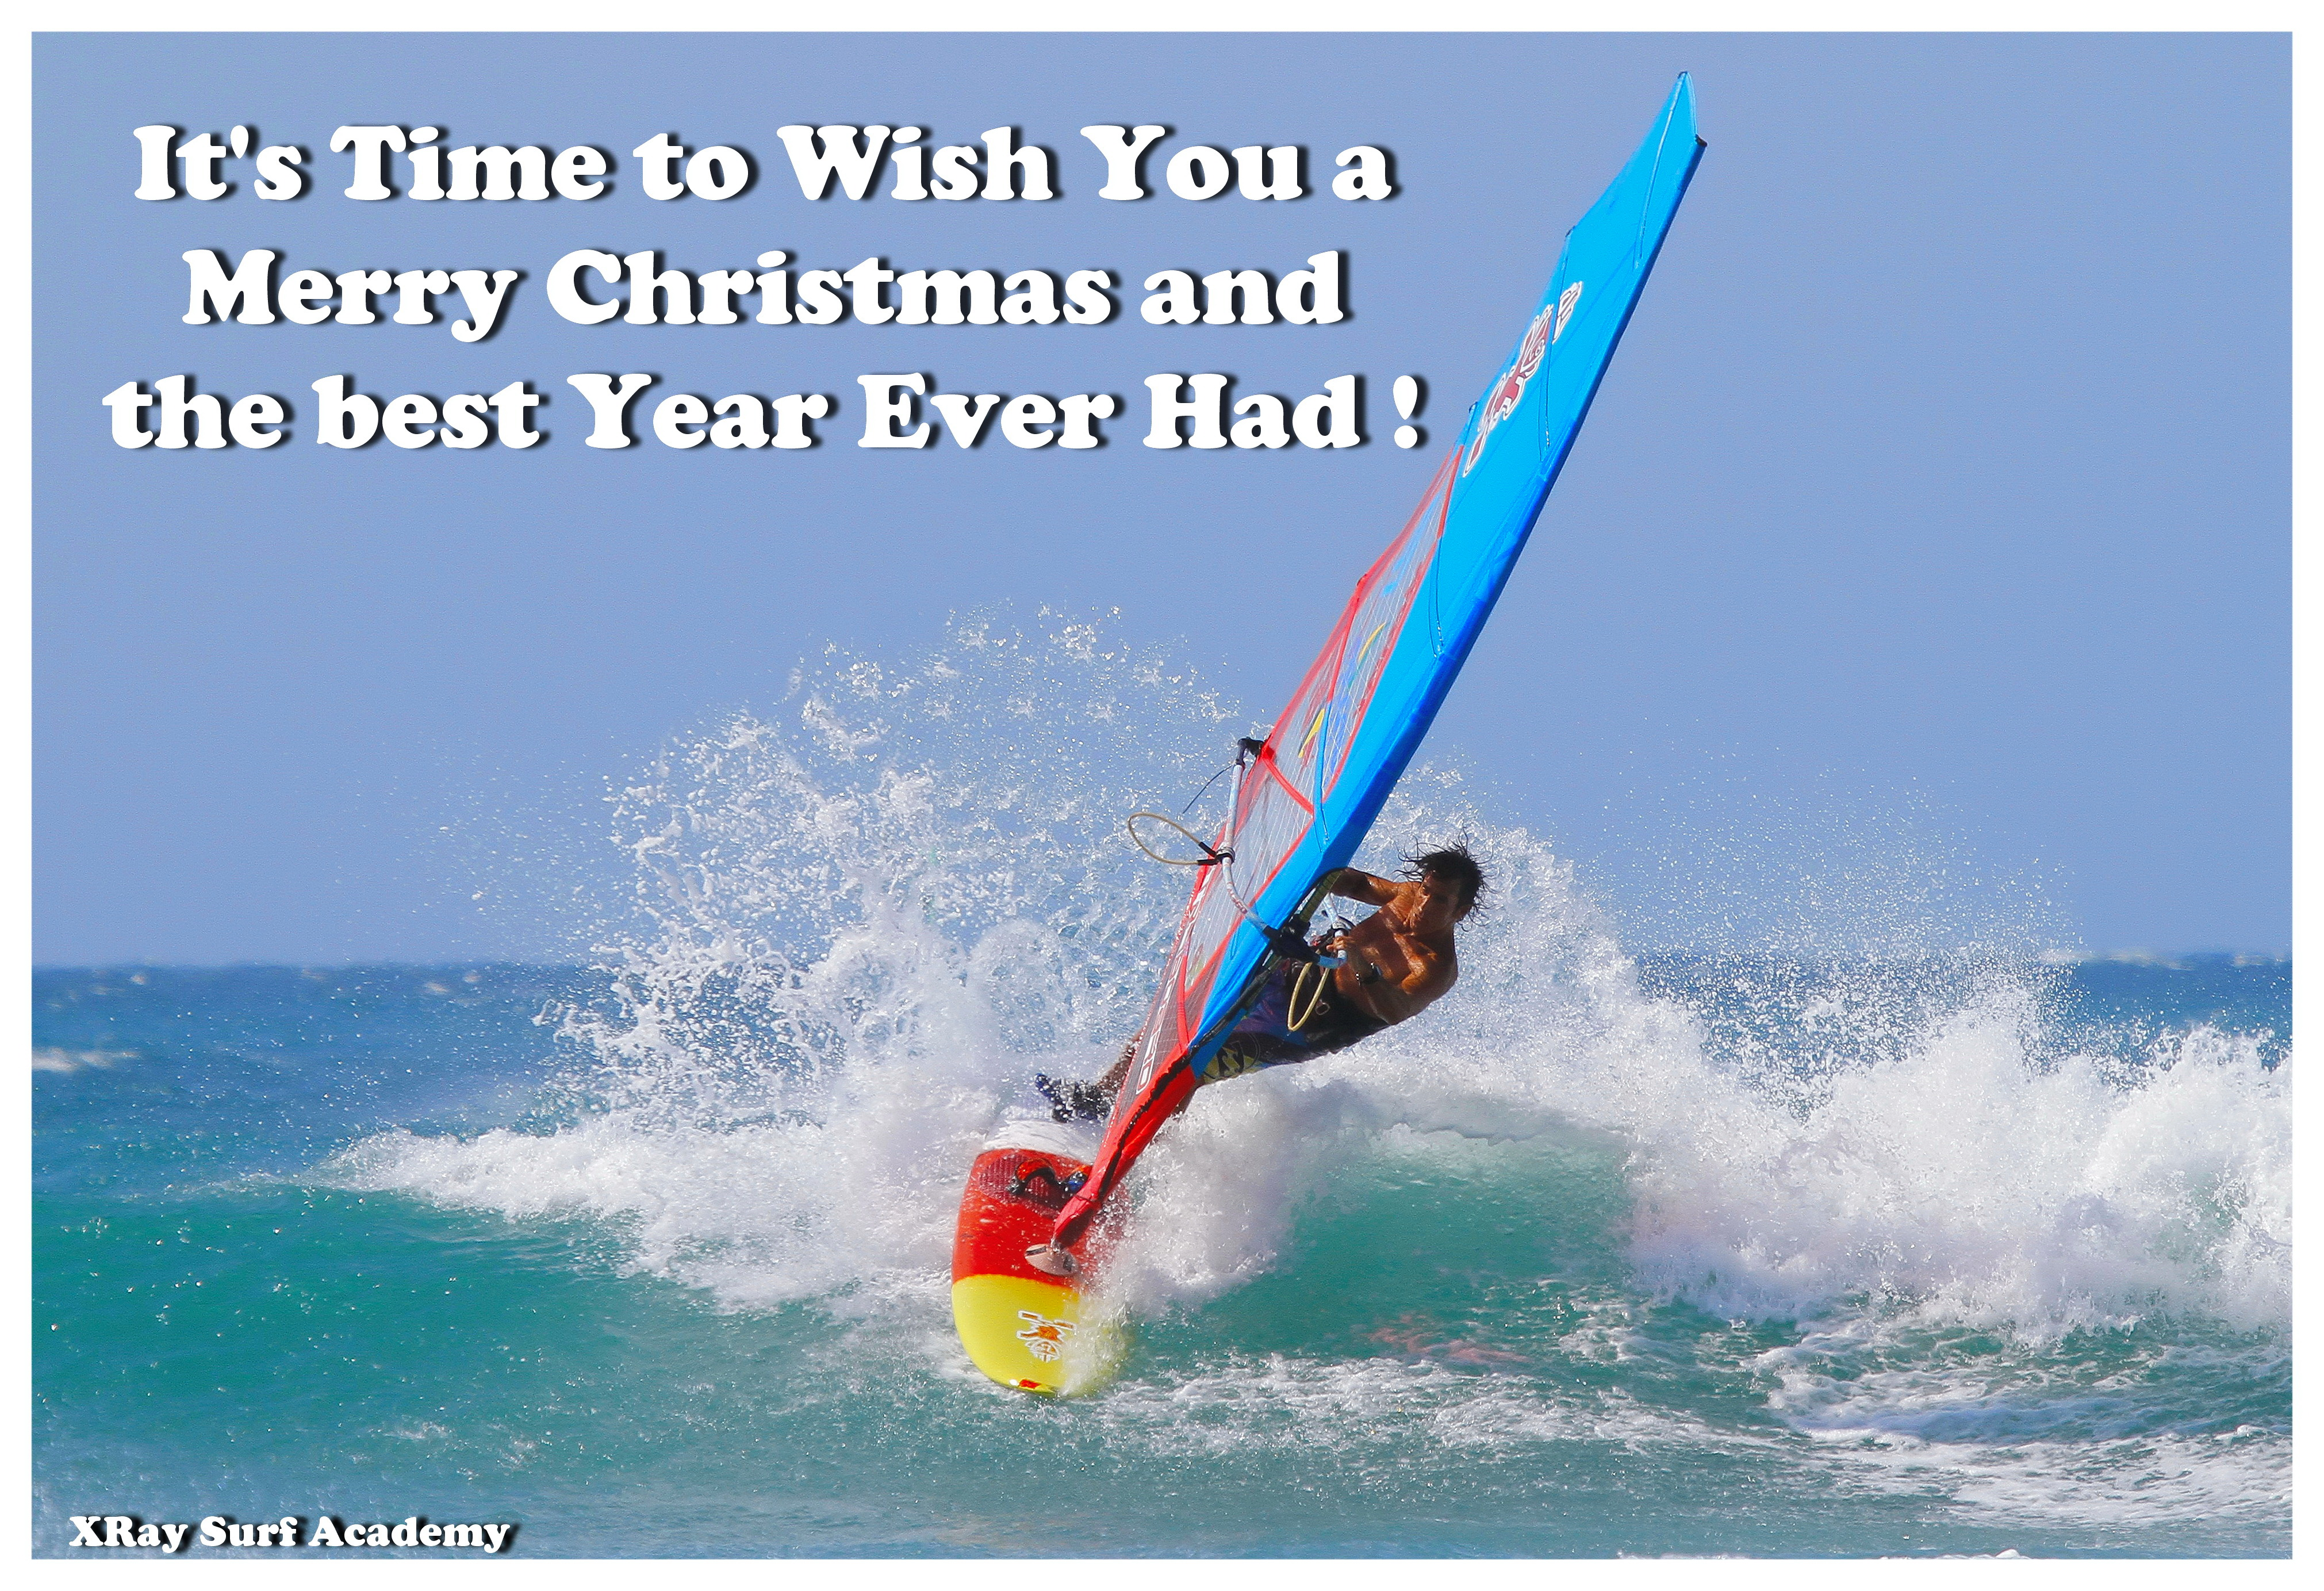 MERRY CHRISTMAS AND HAPPY NEW WINDY YEAR